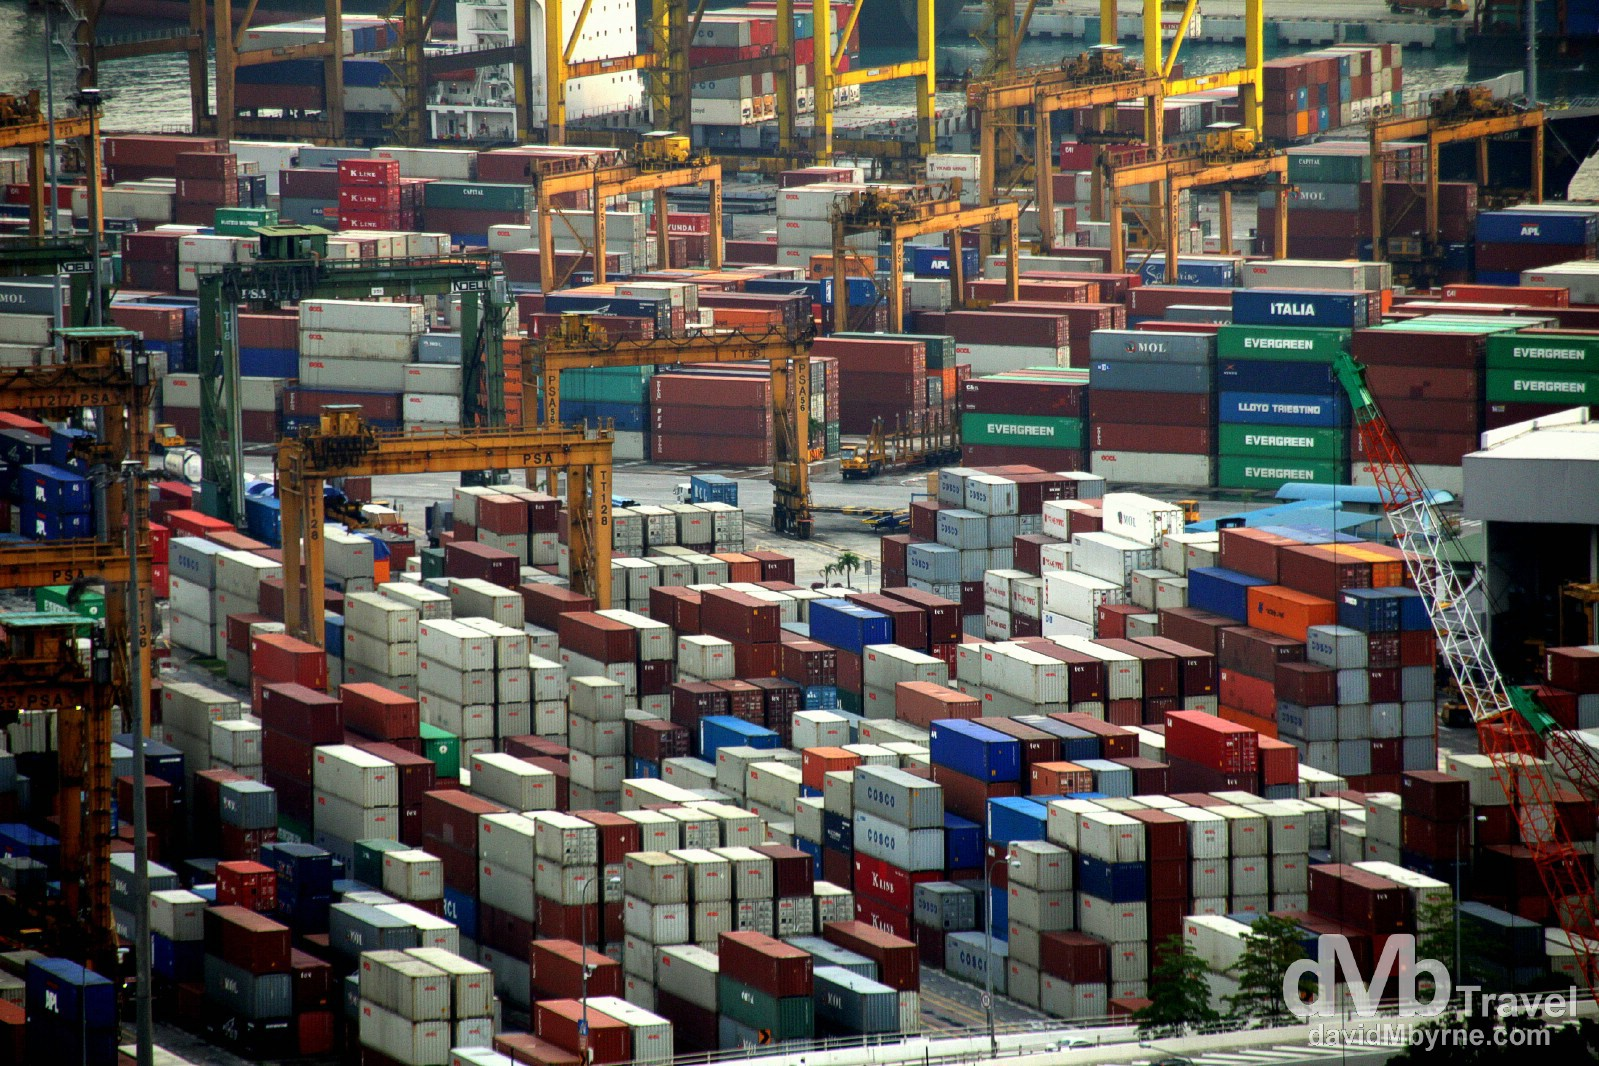 Singapore ranks either first, second or third on the list of biggest/busiest container ports in the world depending on which list you read (Shanghai & Hong Kong will be up there, too). The port is responsible for a lot of the country's wealth. This is the view of a section of the port looking right from the balcony of an apartment in the CBD. Oh, and construction is still booming here; 24-hour-a-day projects are busying away at the next vertigo-inducing skyscraper wherever way you look in Singapore and especially down here by the water (on reclaimed land of course). Singapore. March 28th 2012.